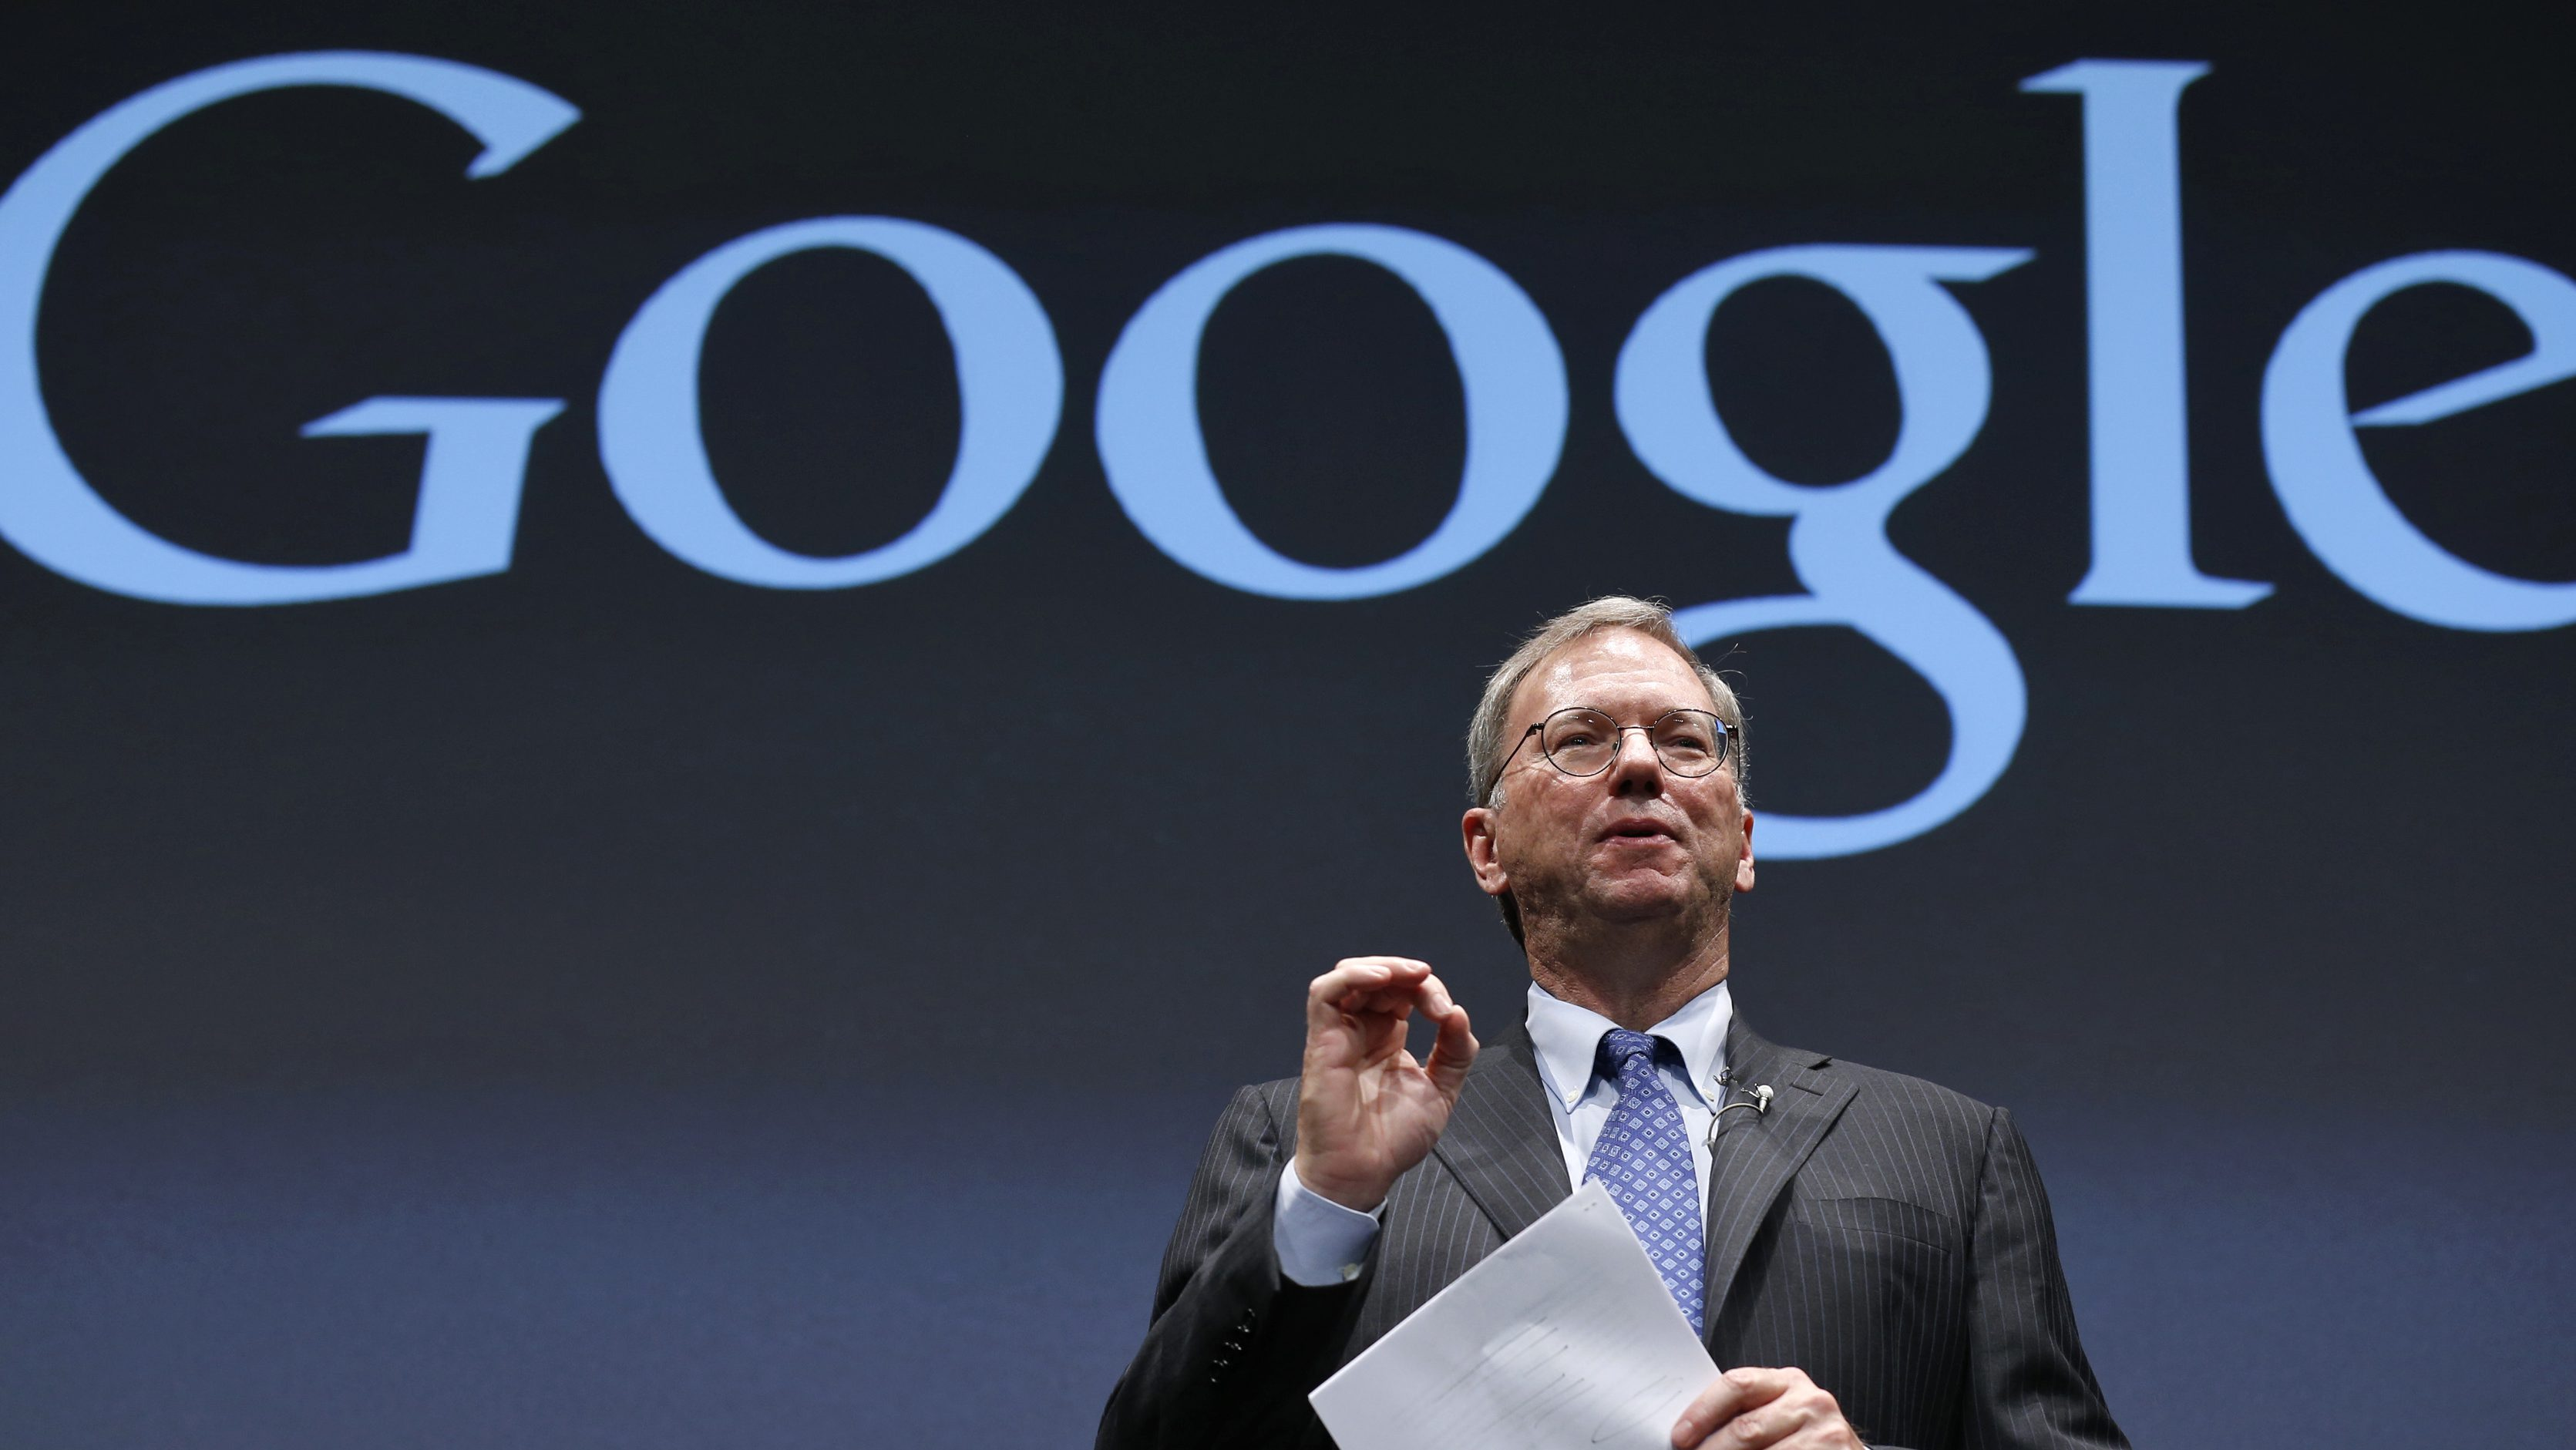 Google Executive Chairman Eric Schmidt speaks at a promotional event for the Nexus 7 tablet in Tokyo September 25, 2012.